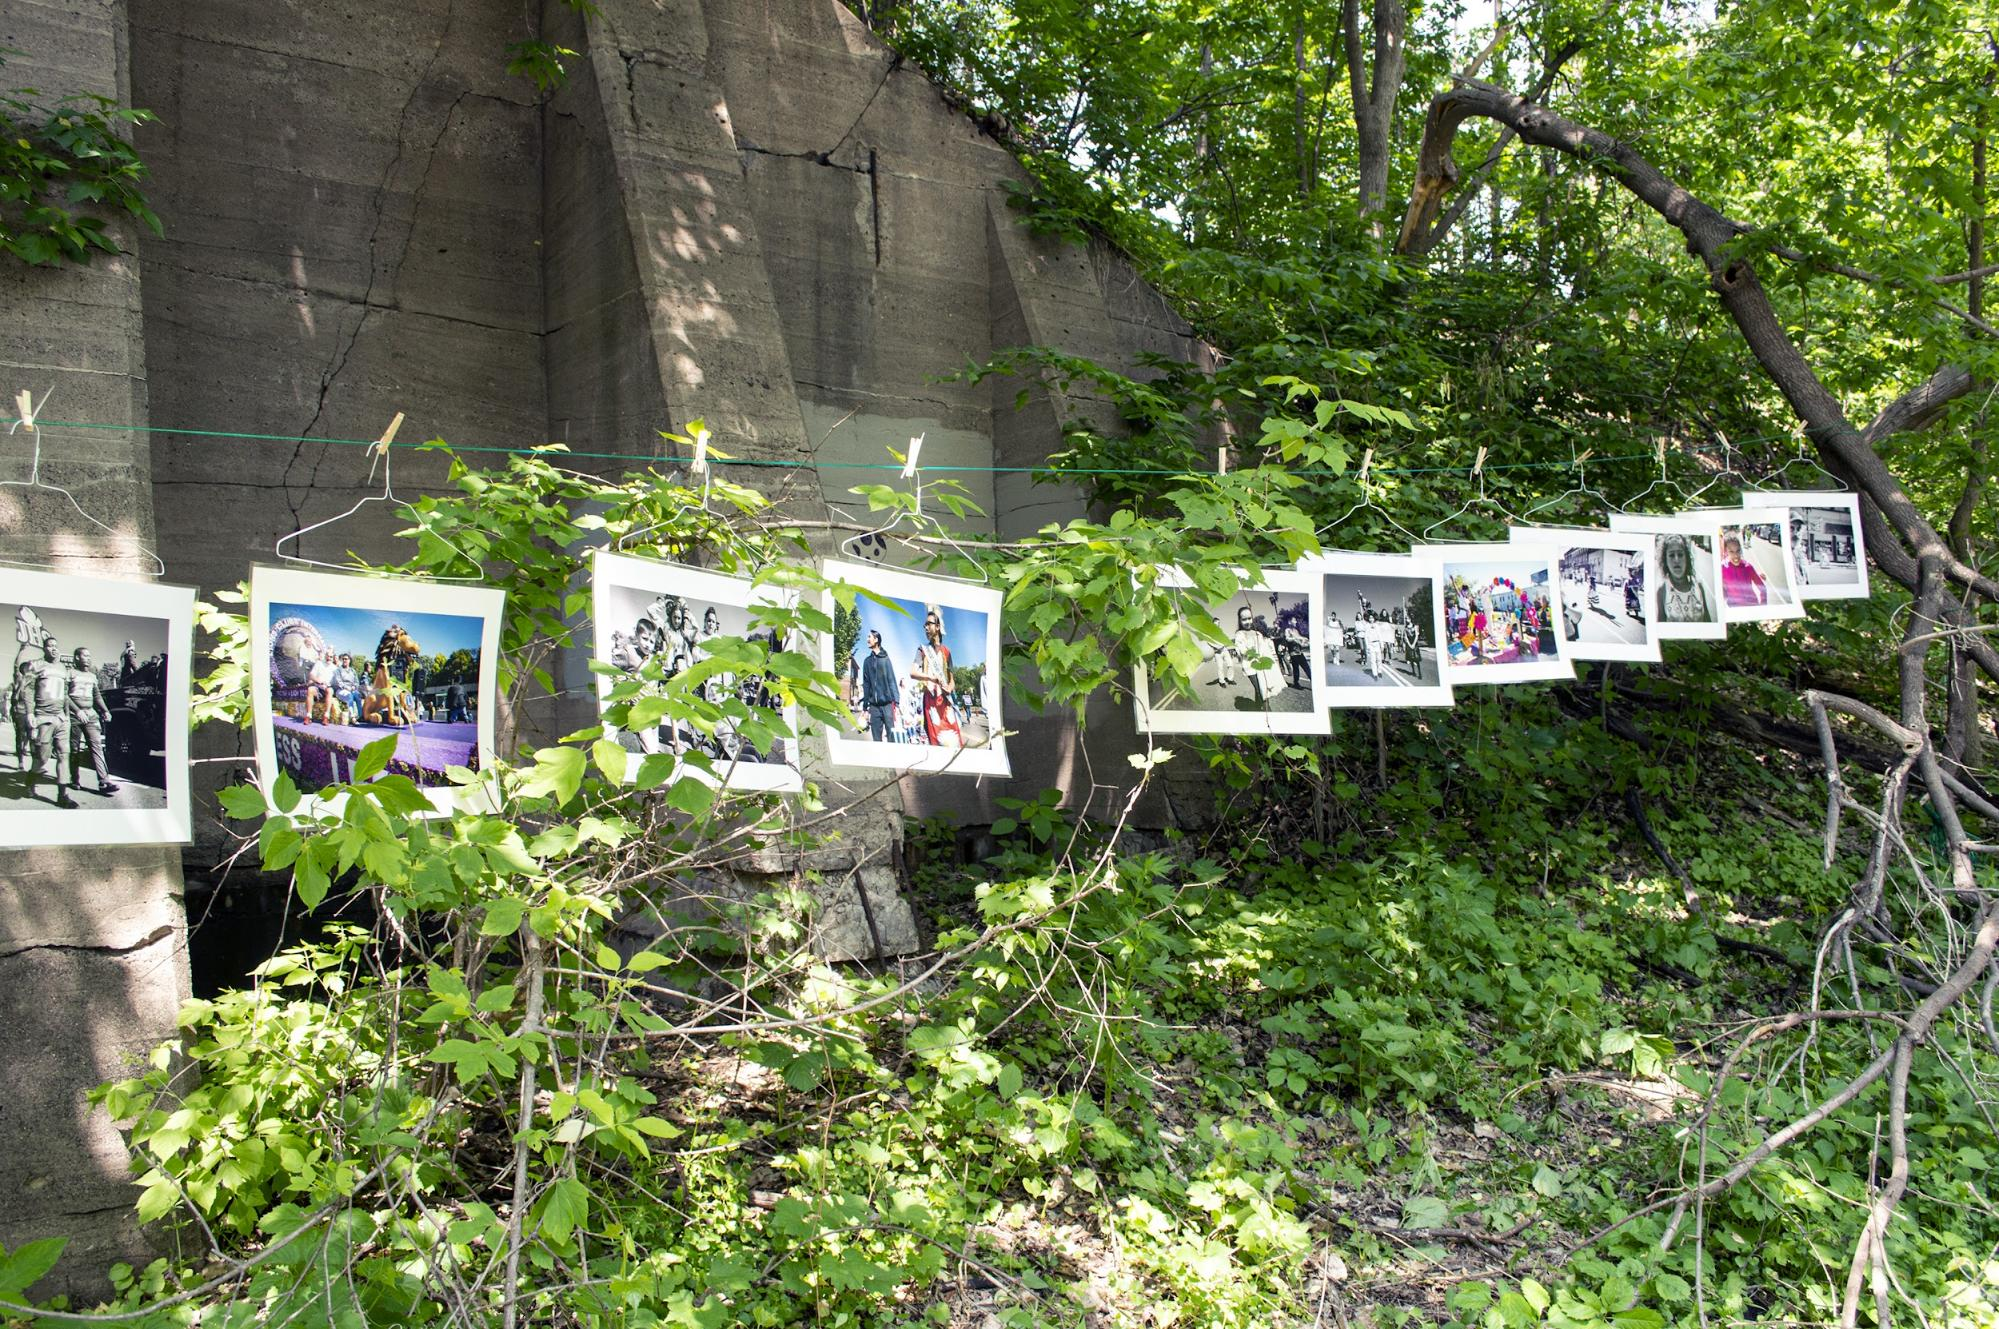 """""""Parade Through the Hollow,"""" an art installation by St. Paul photographer Stephan F. Kistler, in Swede Hollow Park on June 1. (Mandy Hathaway / The Metropolitan)"""